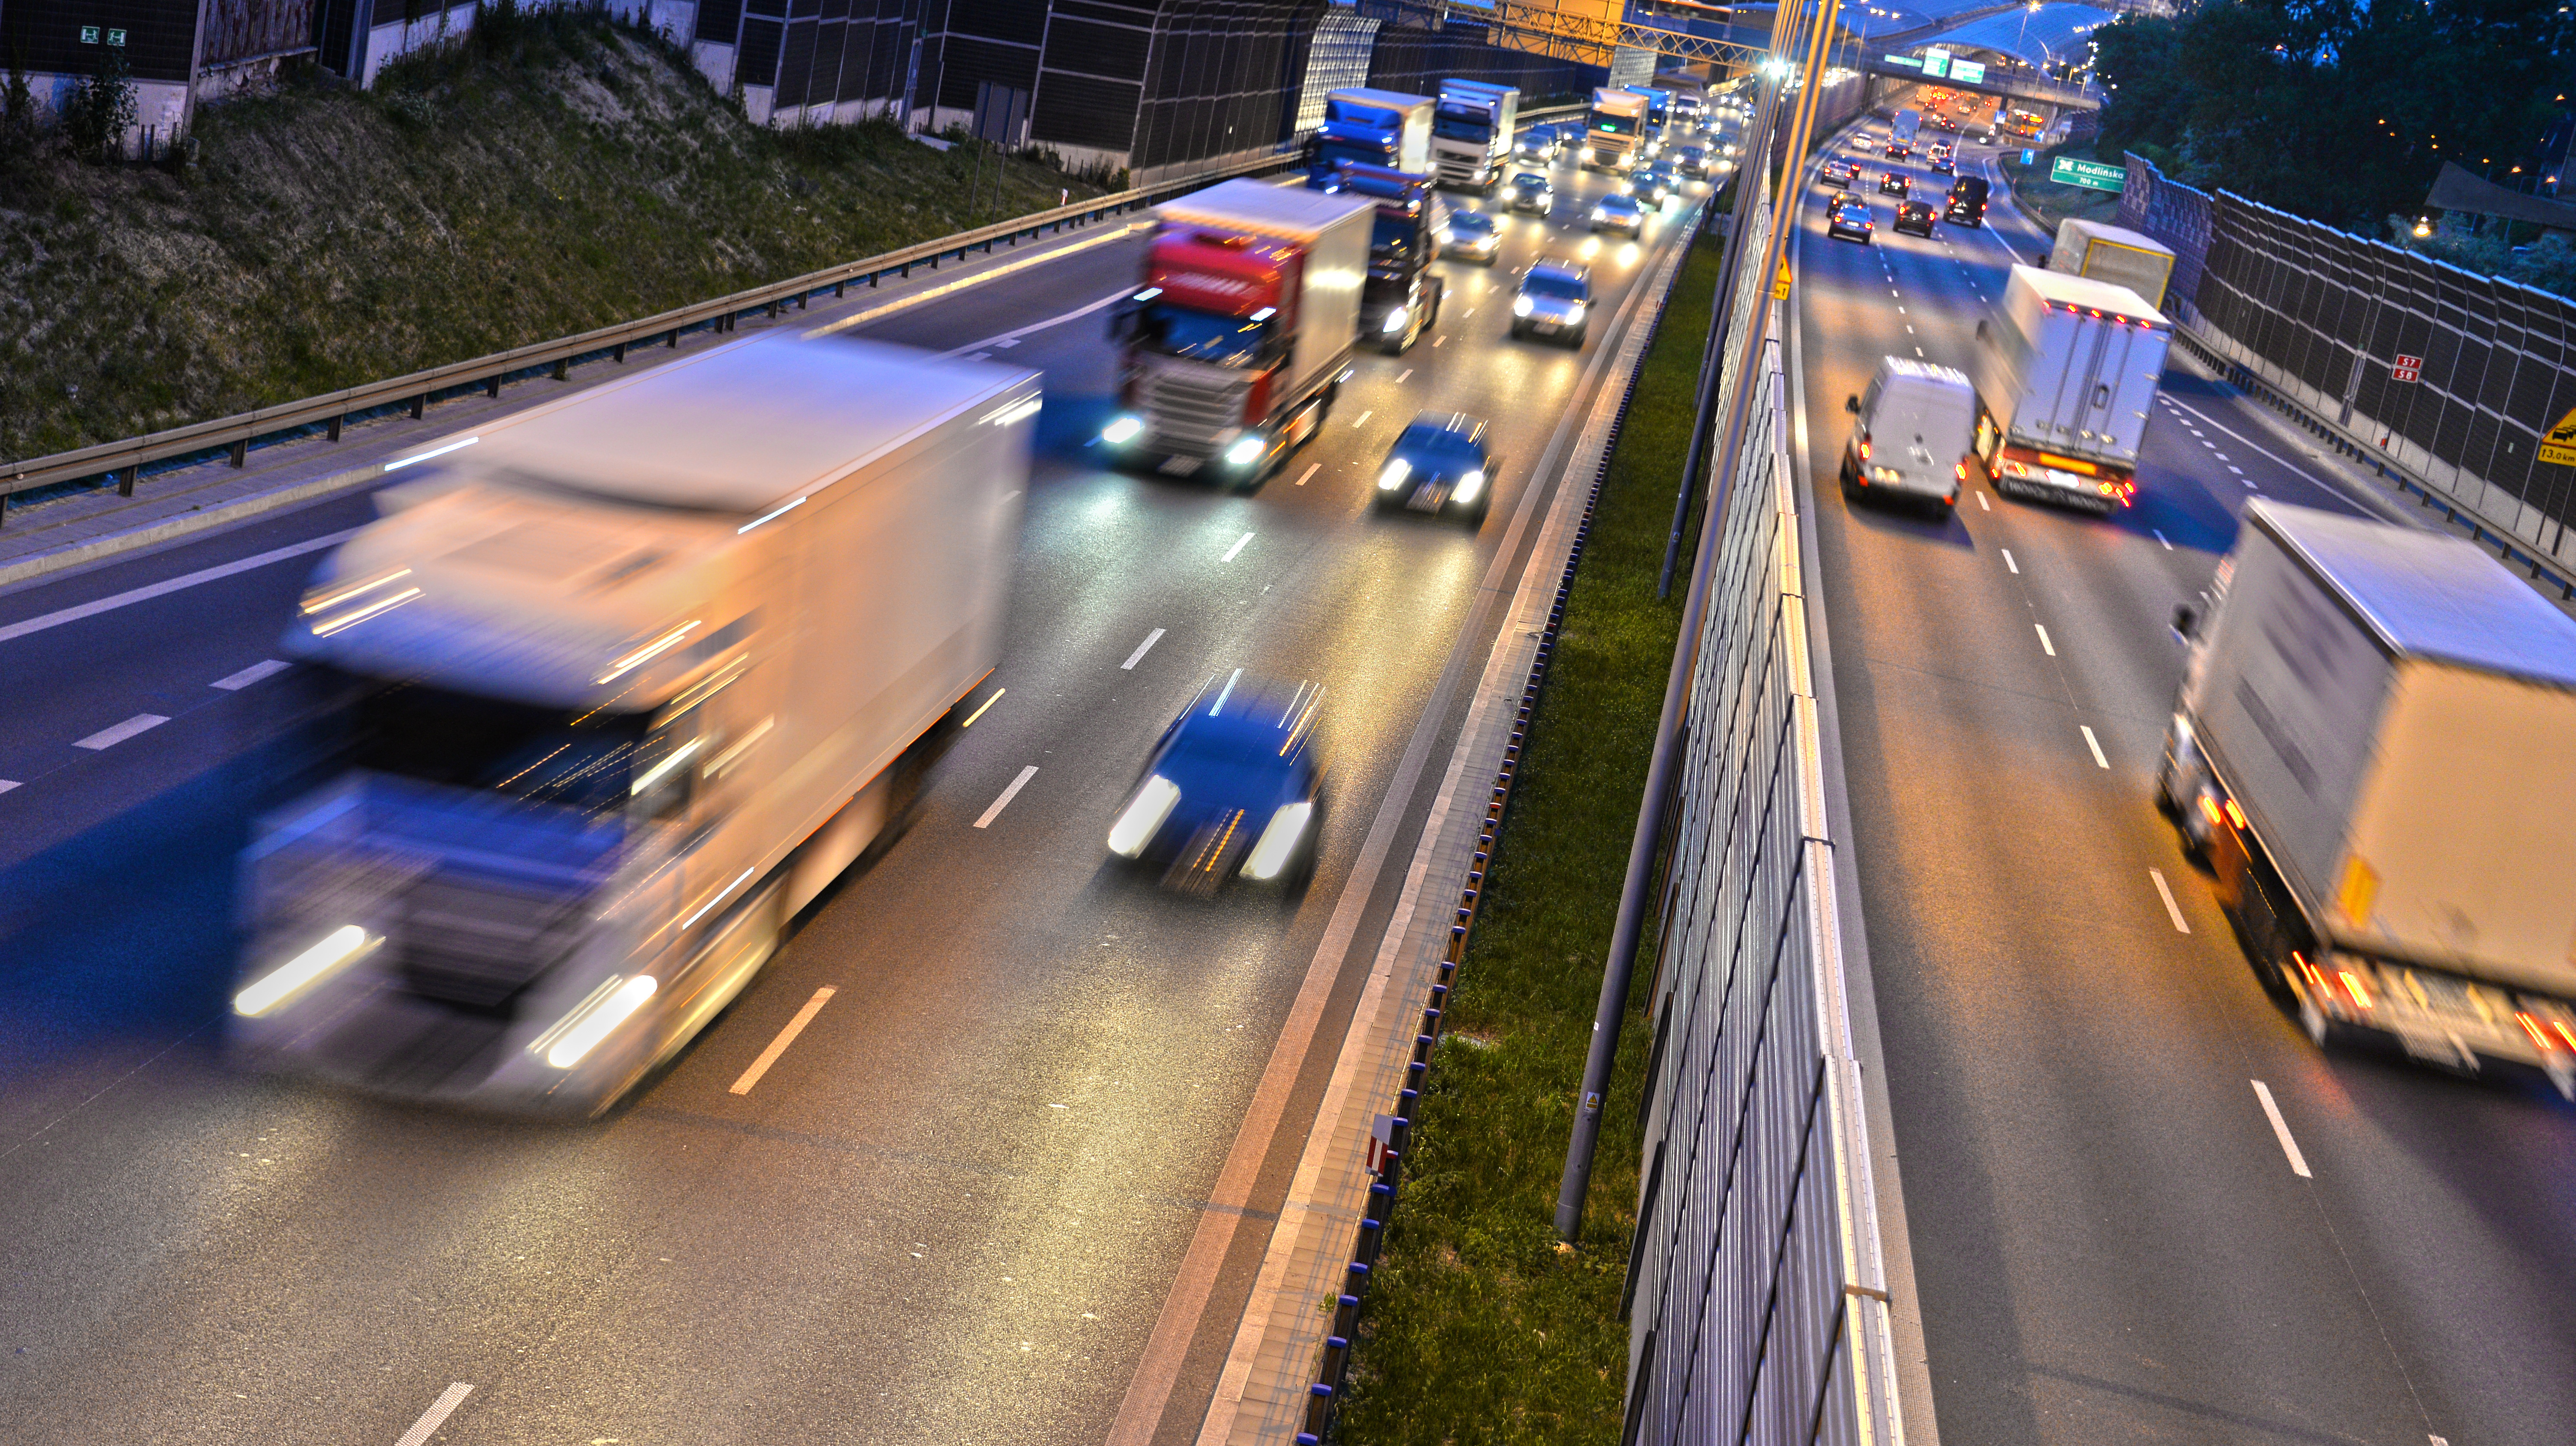 The EU Mobility Package rules are harmful and represent double-dealing